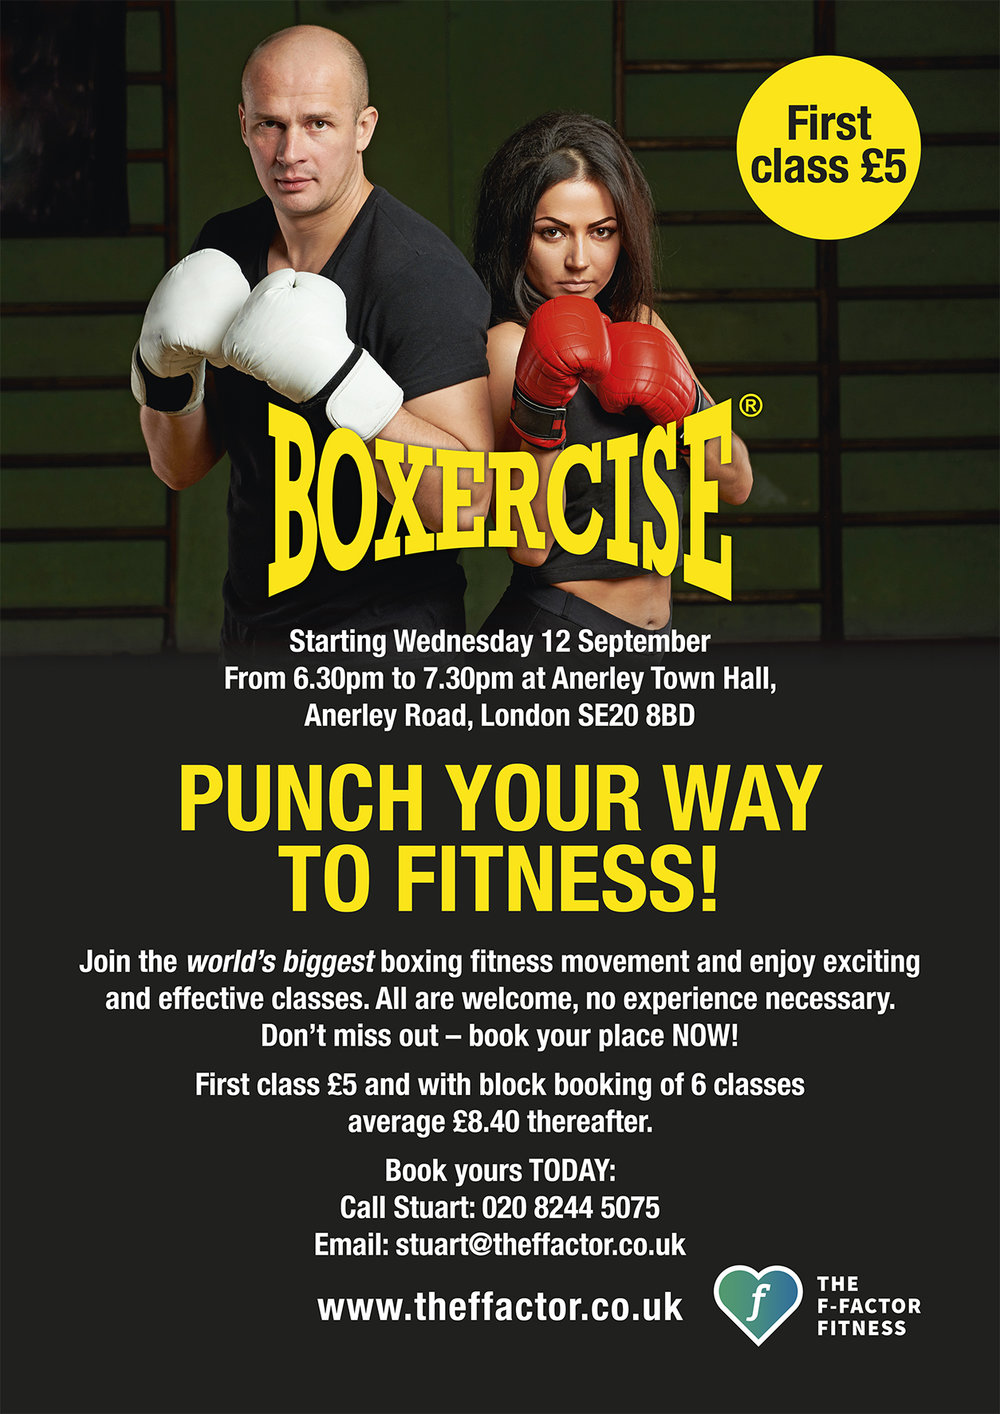 Boxercise A6 postcard_Anerley_cropped.jpg